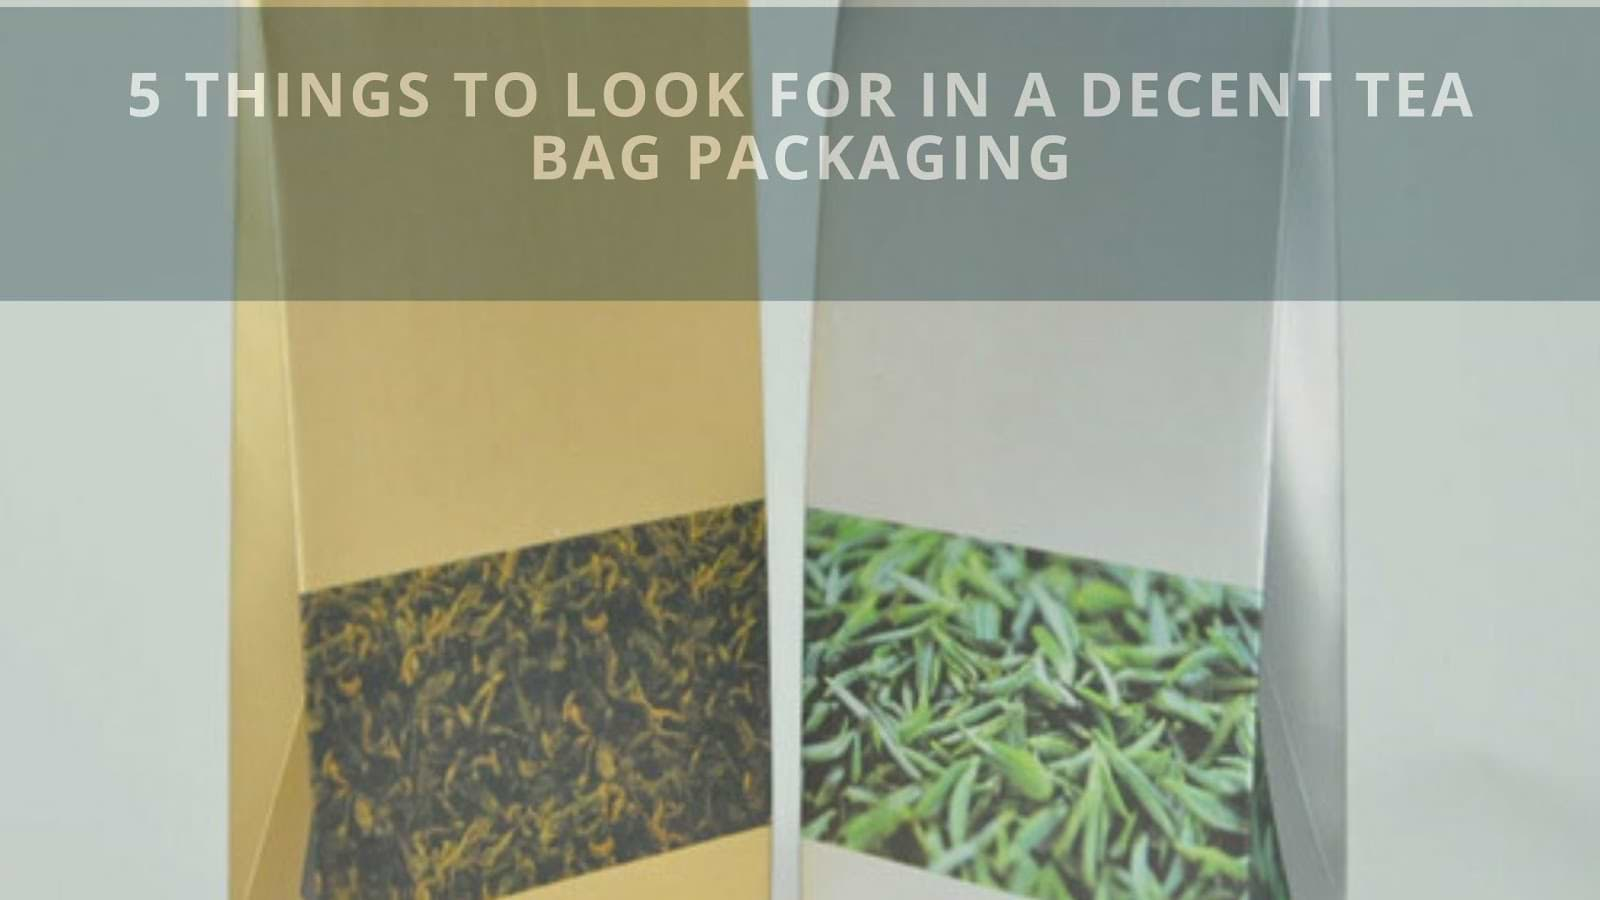 5 Things to Look for in a Decent Tea Bag Packaging